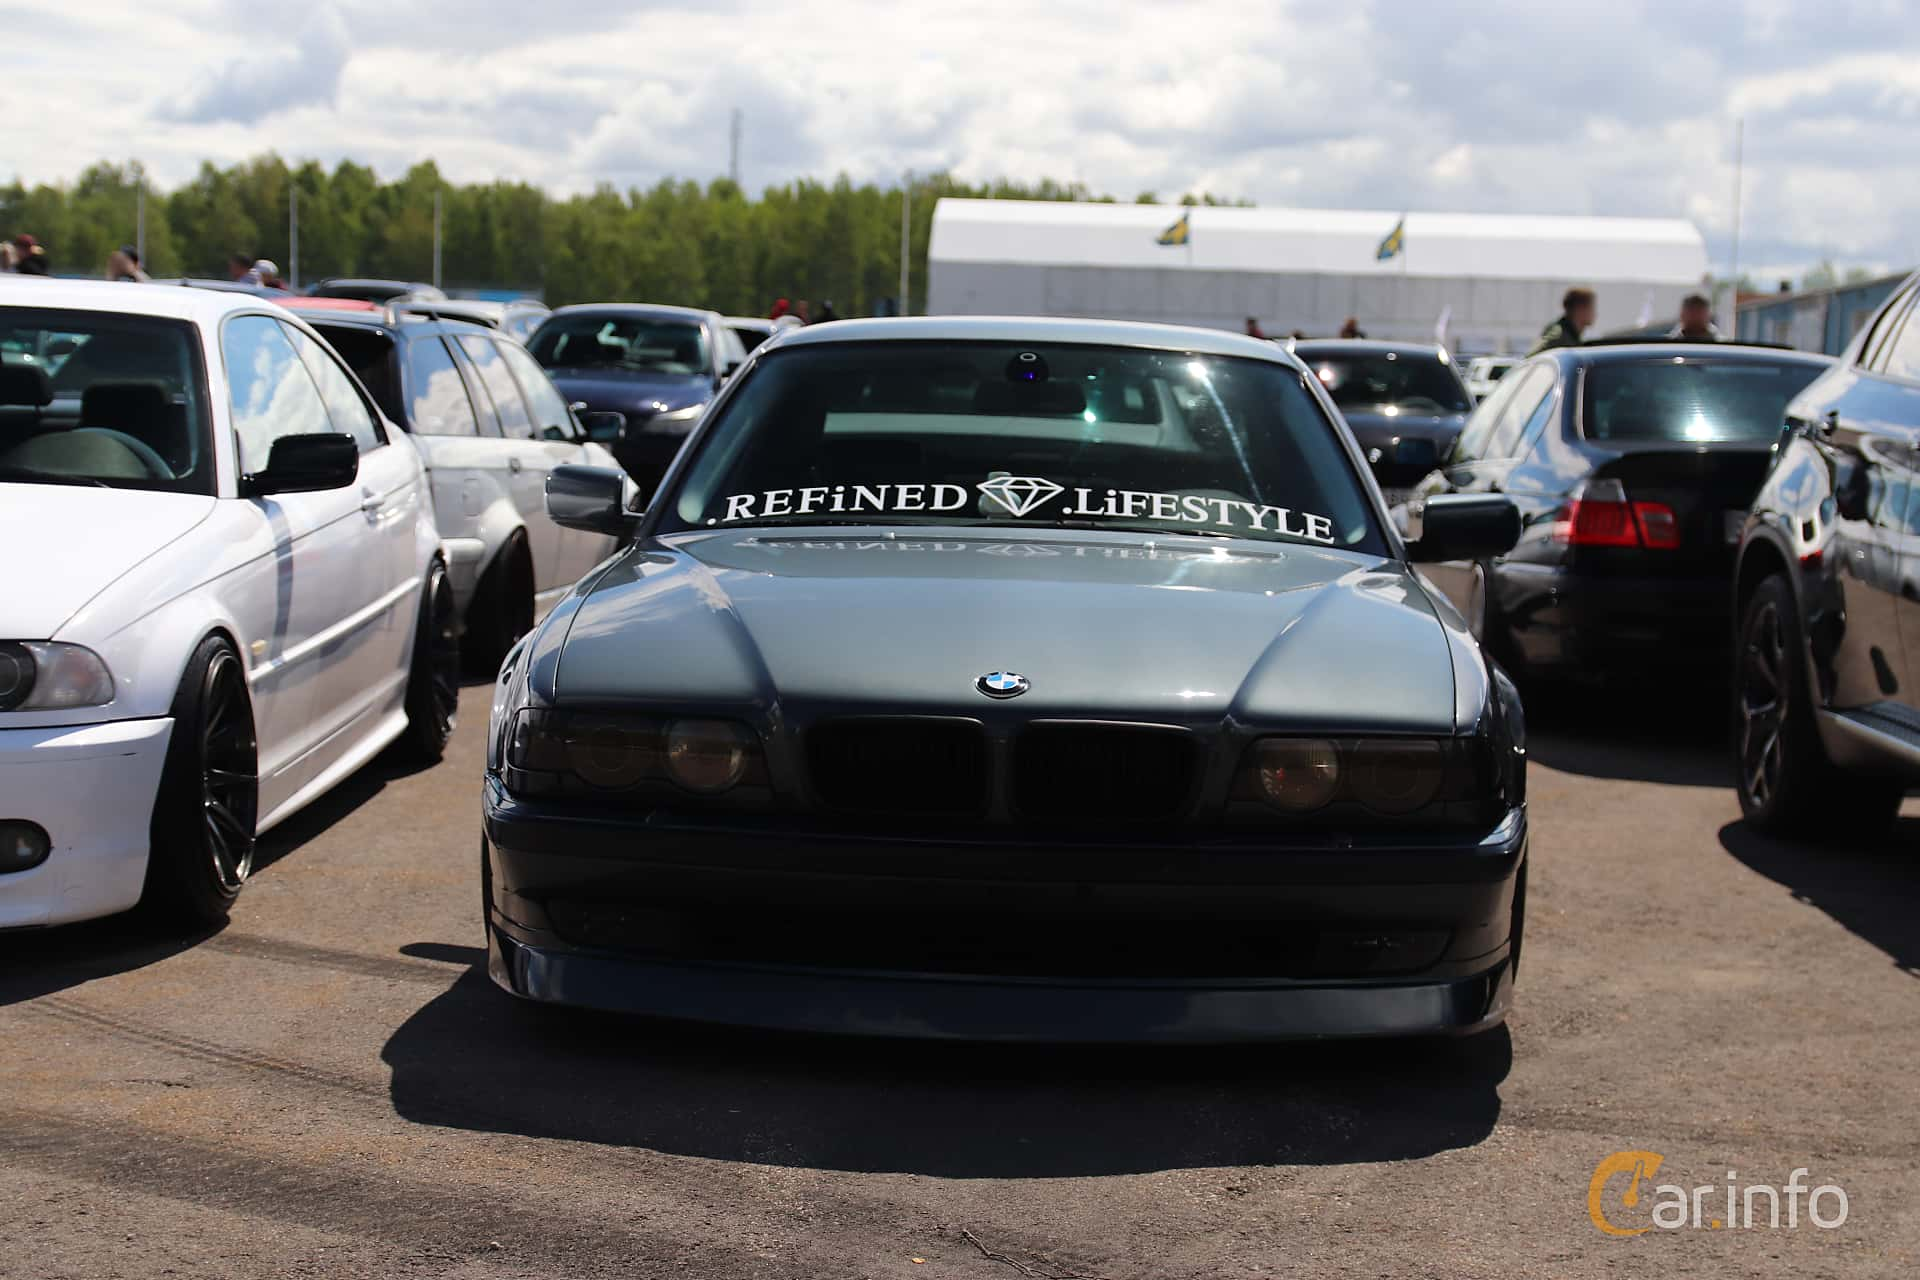 BMW 740i  Automatic, 286hp, 1999 at Bimmers of Sweden @ Mantorp 2019